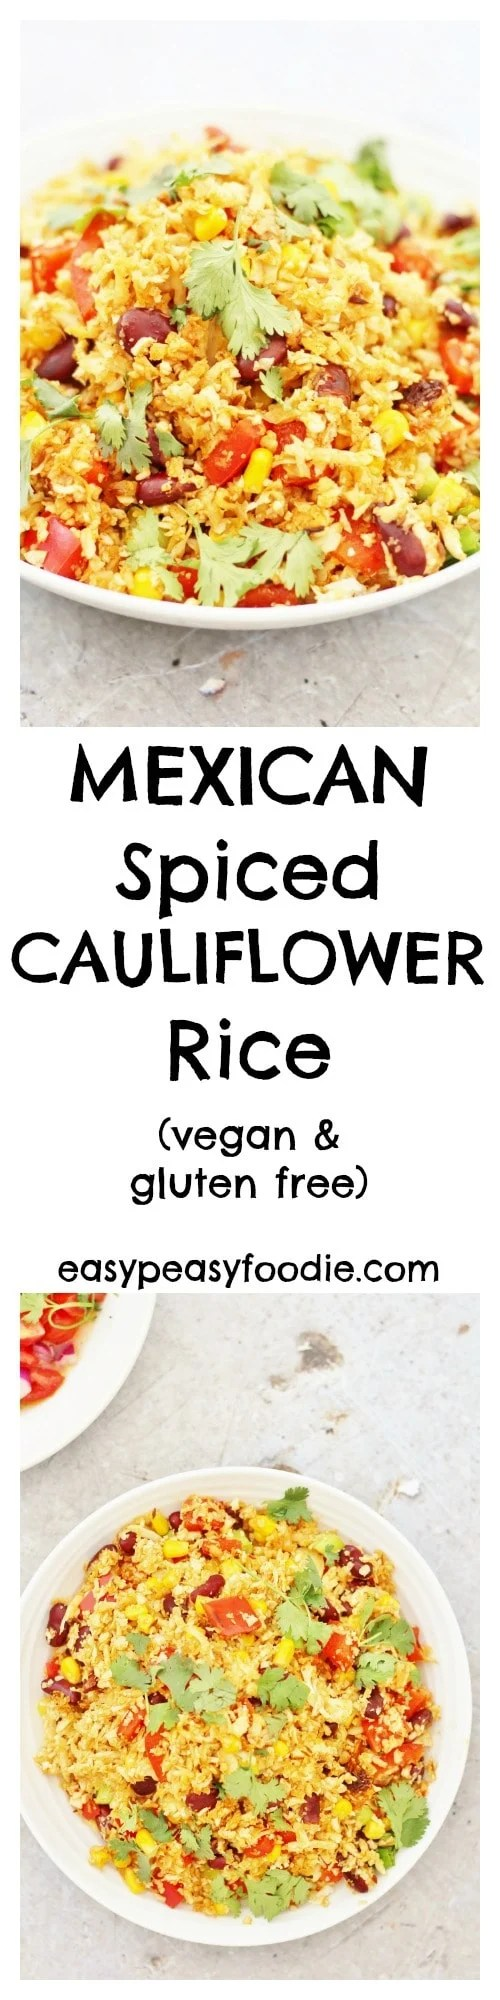 Full of flavour, but low in carbs and calories, this Mexican Spiced Cauliflower Rice, turns the humble cauliflower into something rather spectacular! You can eat this as a main course in its own right, or serve as a side dish with all your Mexican favourites. #MexicanRice MexicanFood #CauliflowerRice #MexicanCauliflowerRice #Vegan #GlutenFree